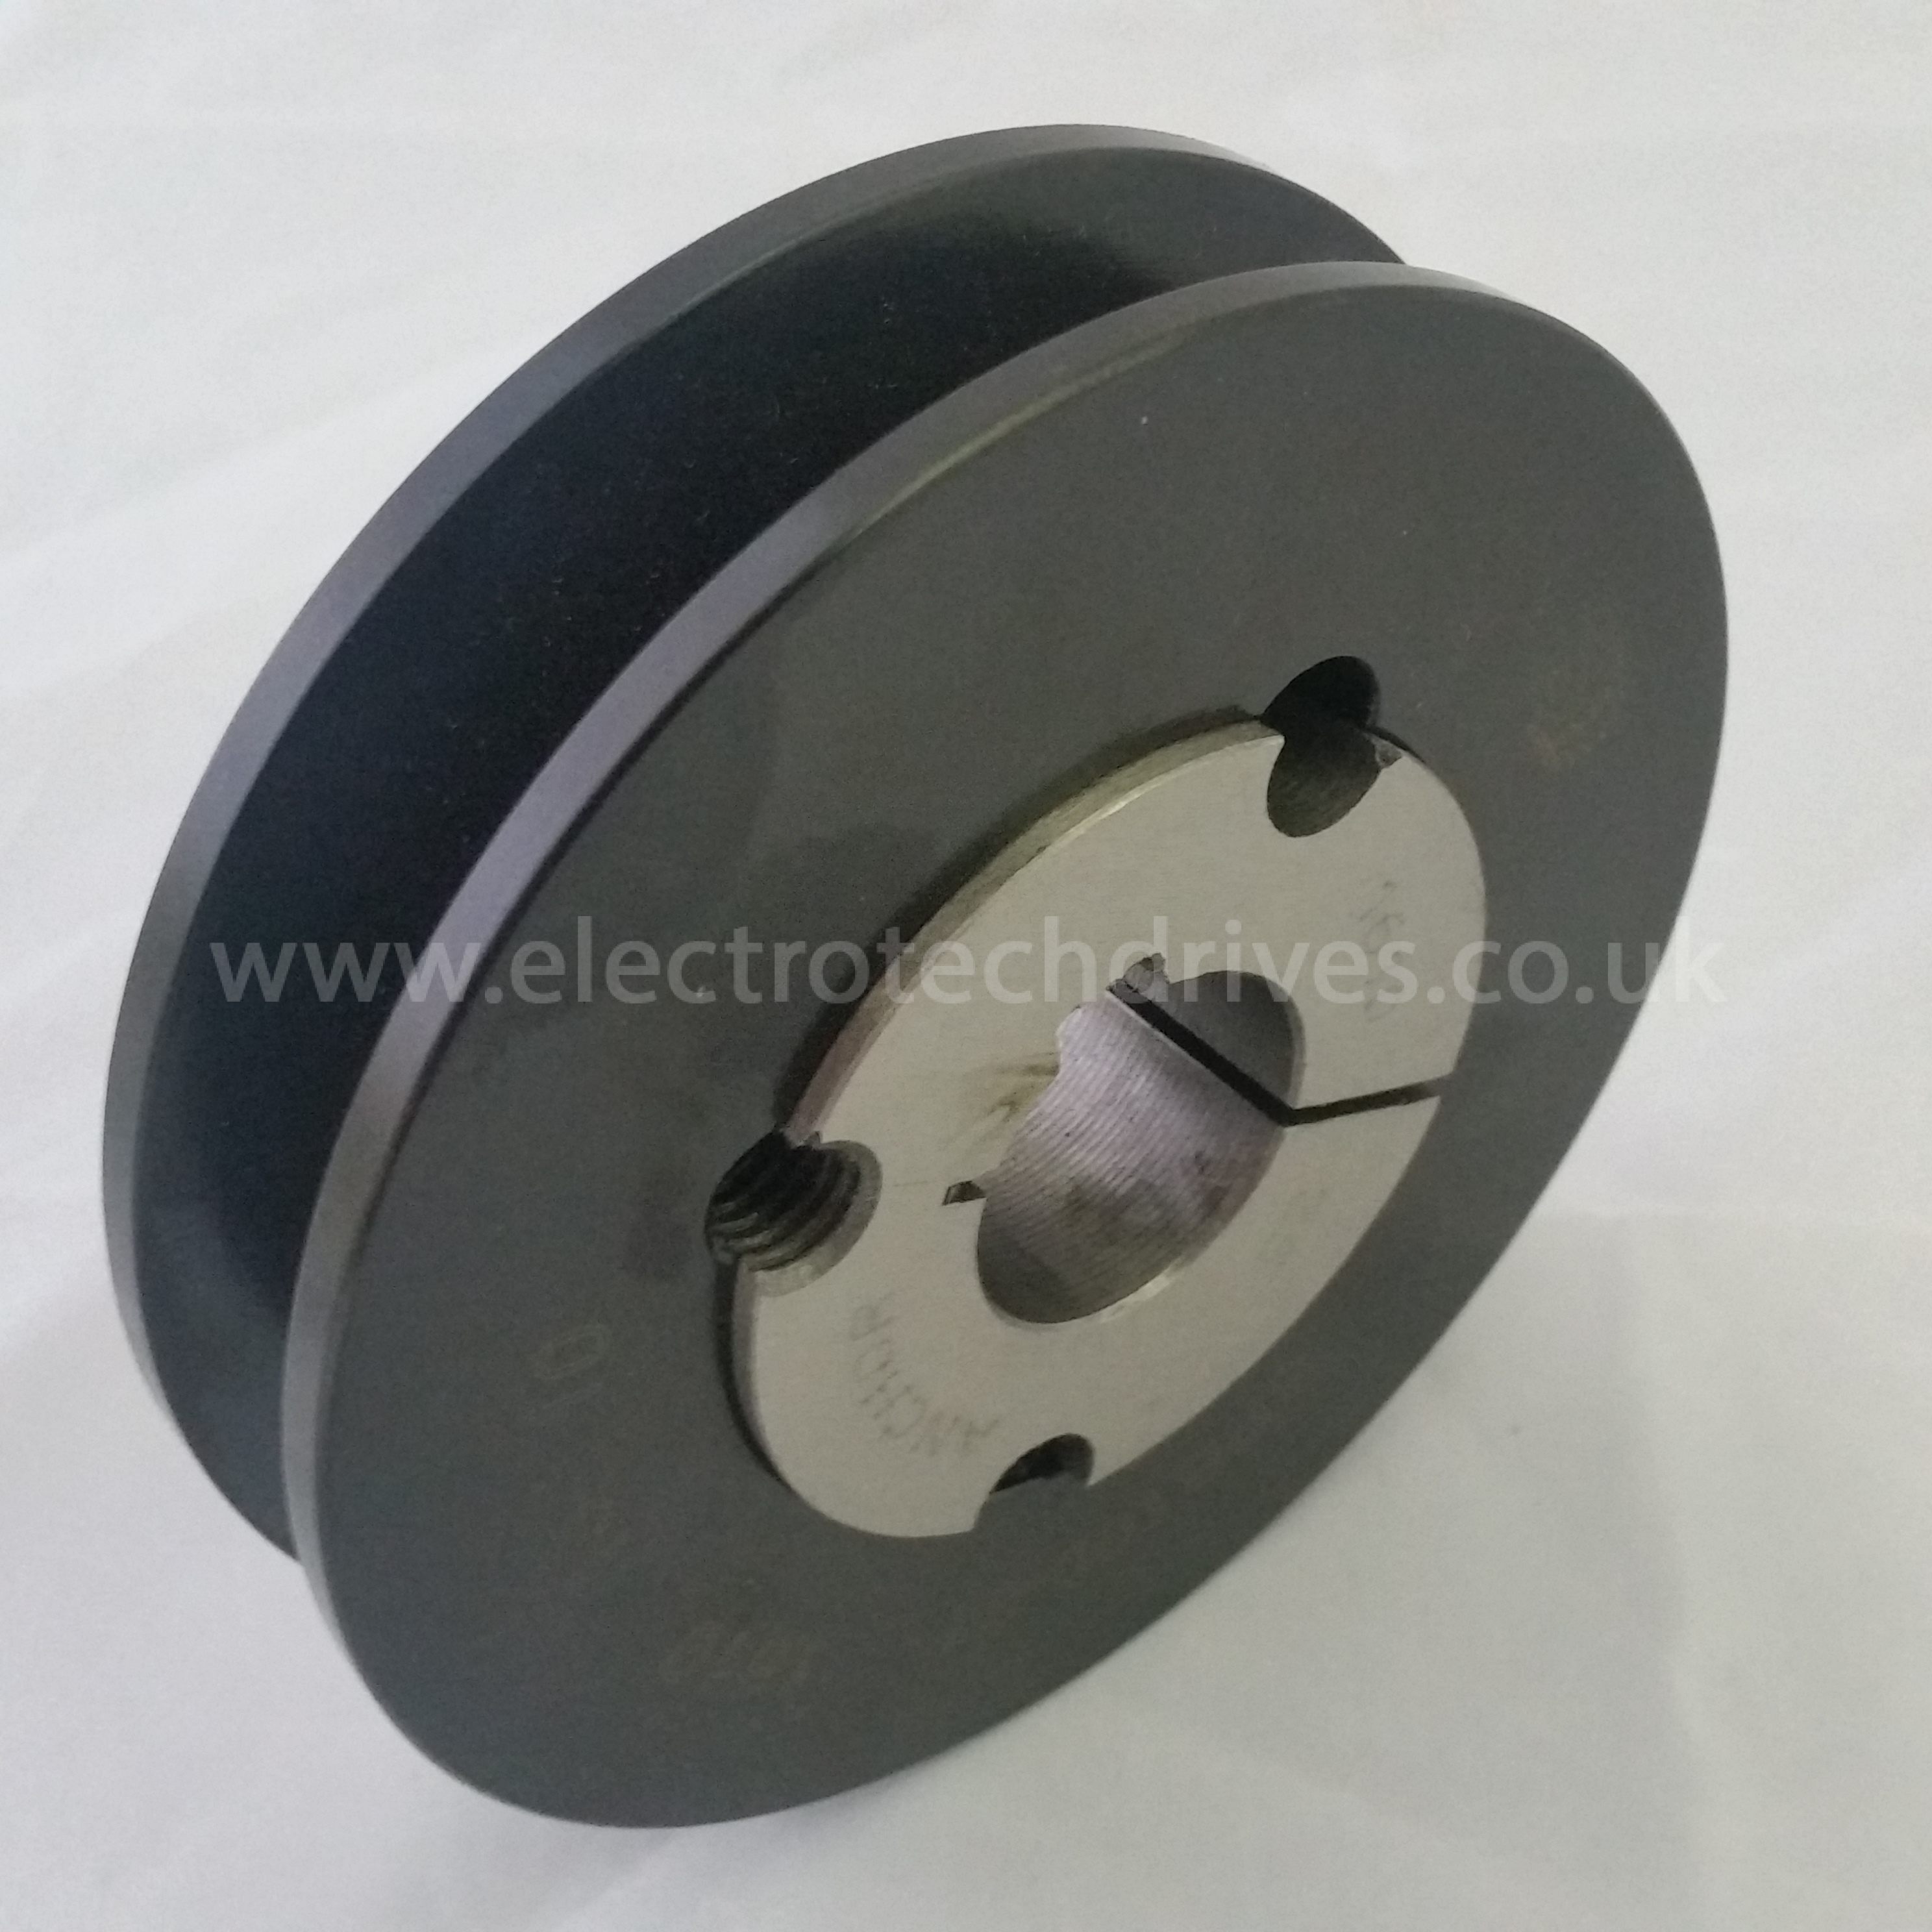 Choice Motor Credit >> SPB100X1 Single Pulley With 1610 Taper Lock Bush to Suit | Electrotech Drives